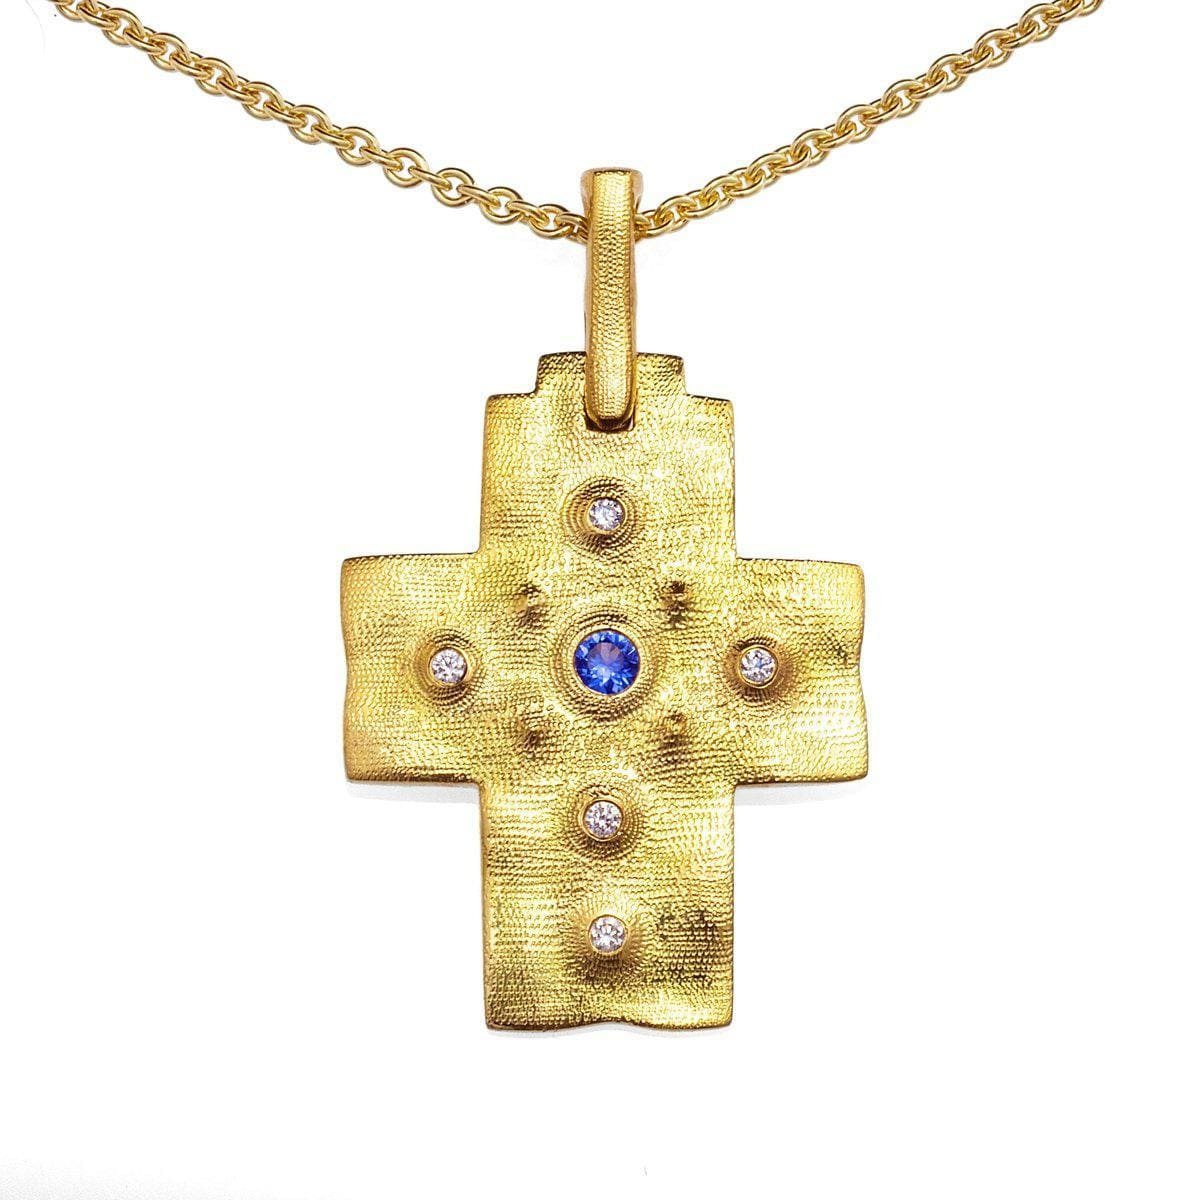 18K Desert Blue Sapphire & Diamond Cross Pendant - M-100-Alex Sepkus-Renee Taylor Gallery